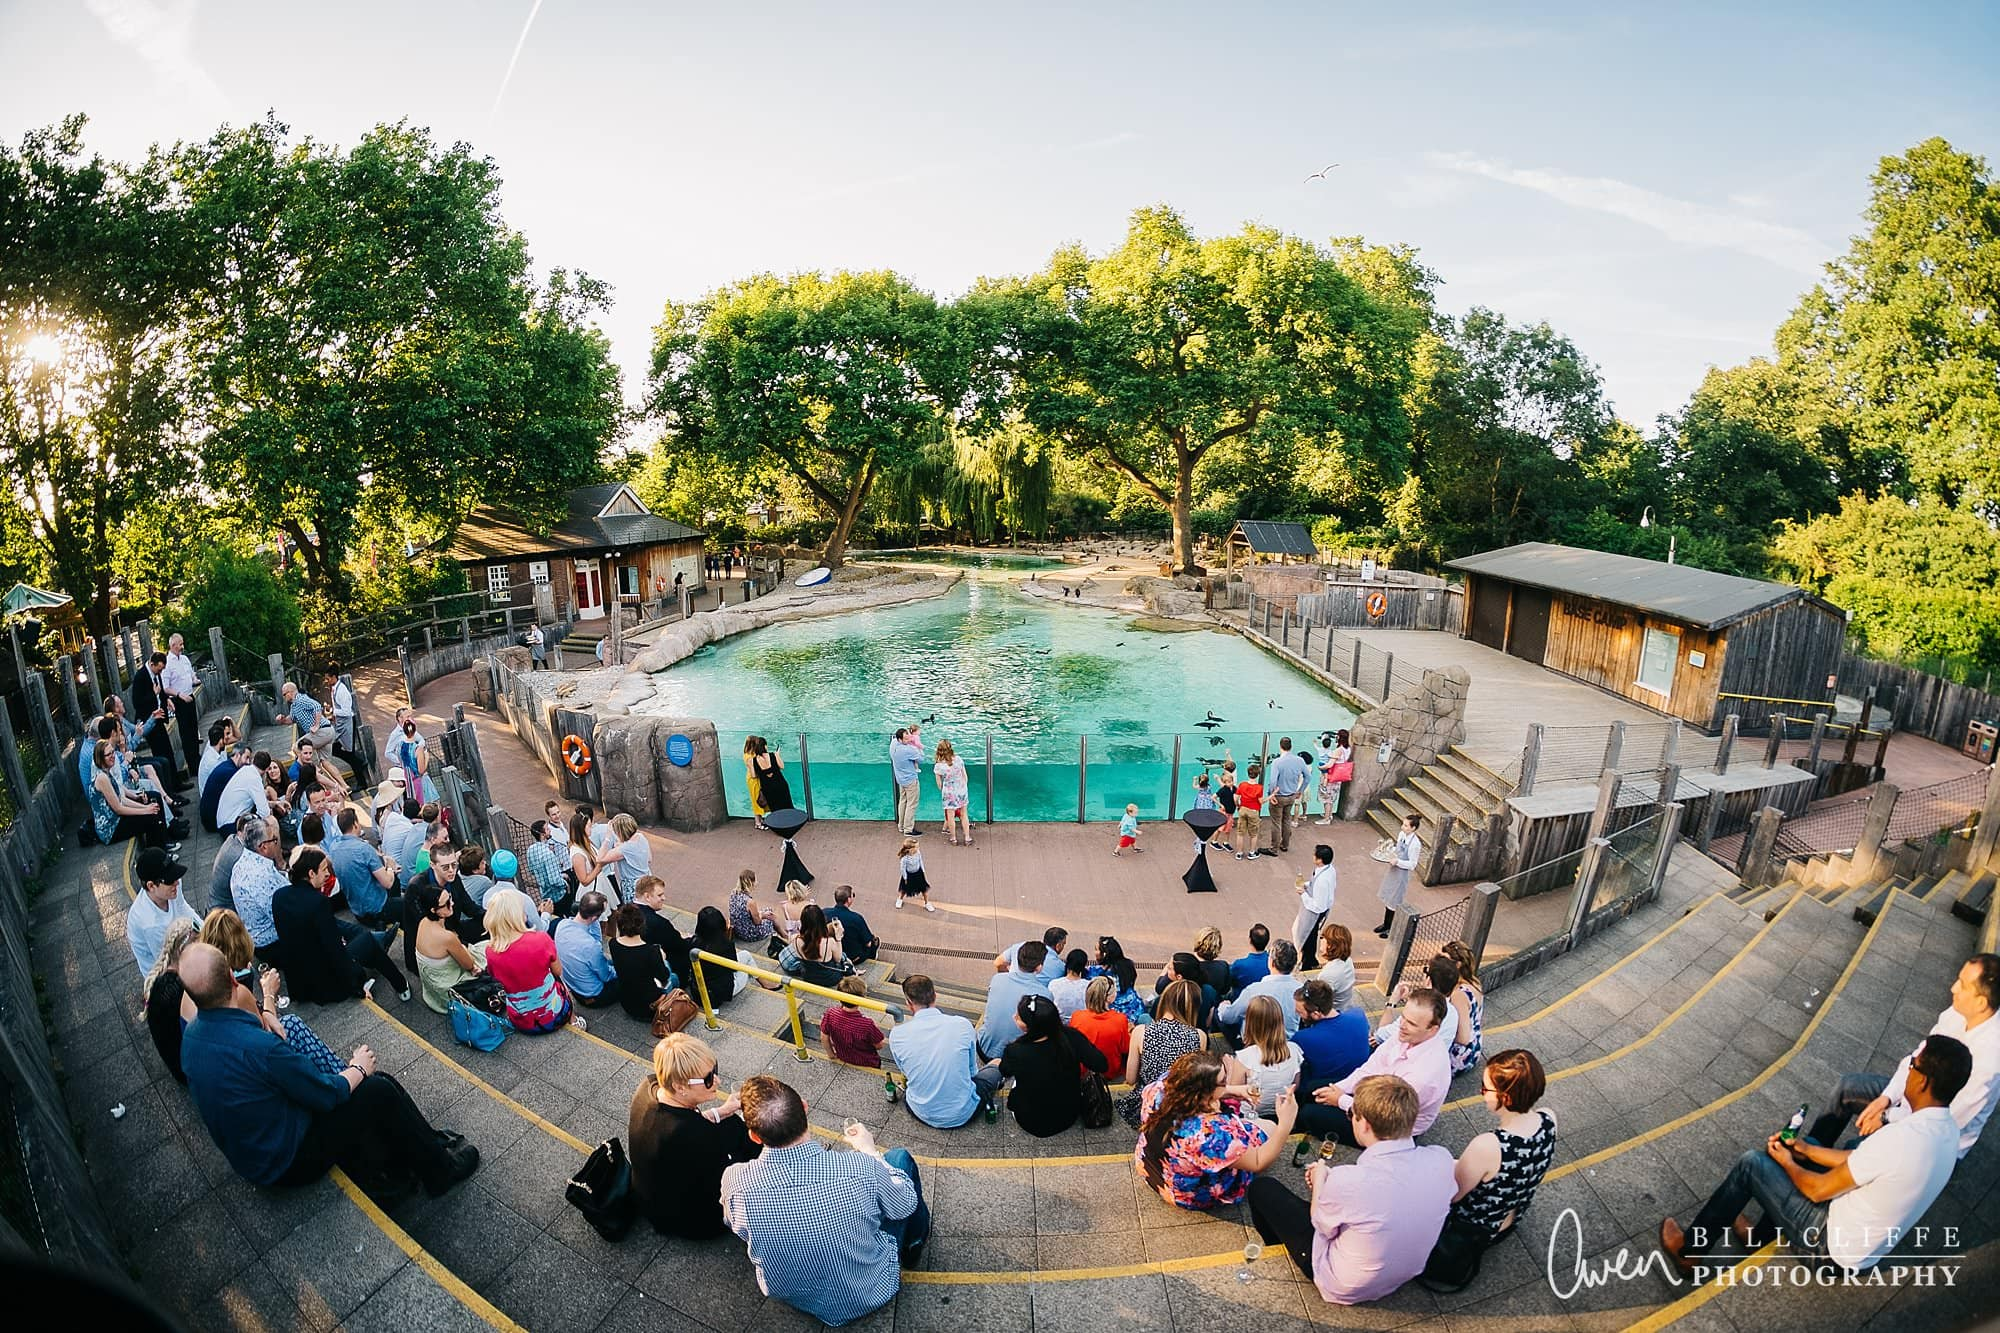 london event photographer zsl london zoo 1706 028 - A Party with the Penguins at London Zoo